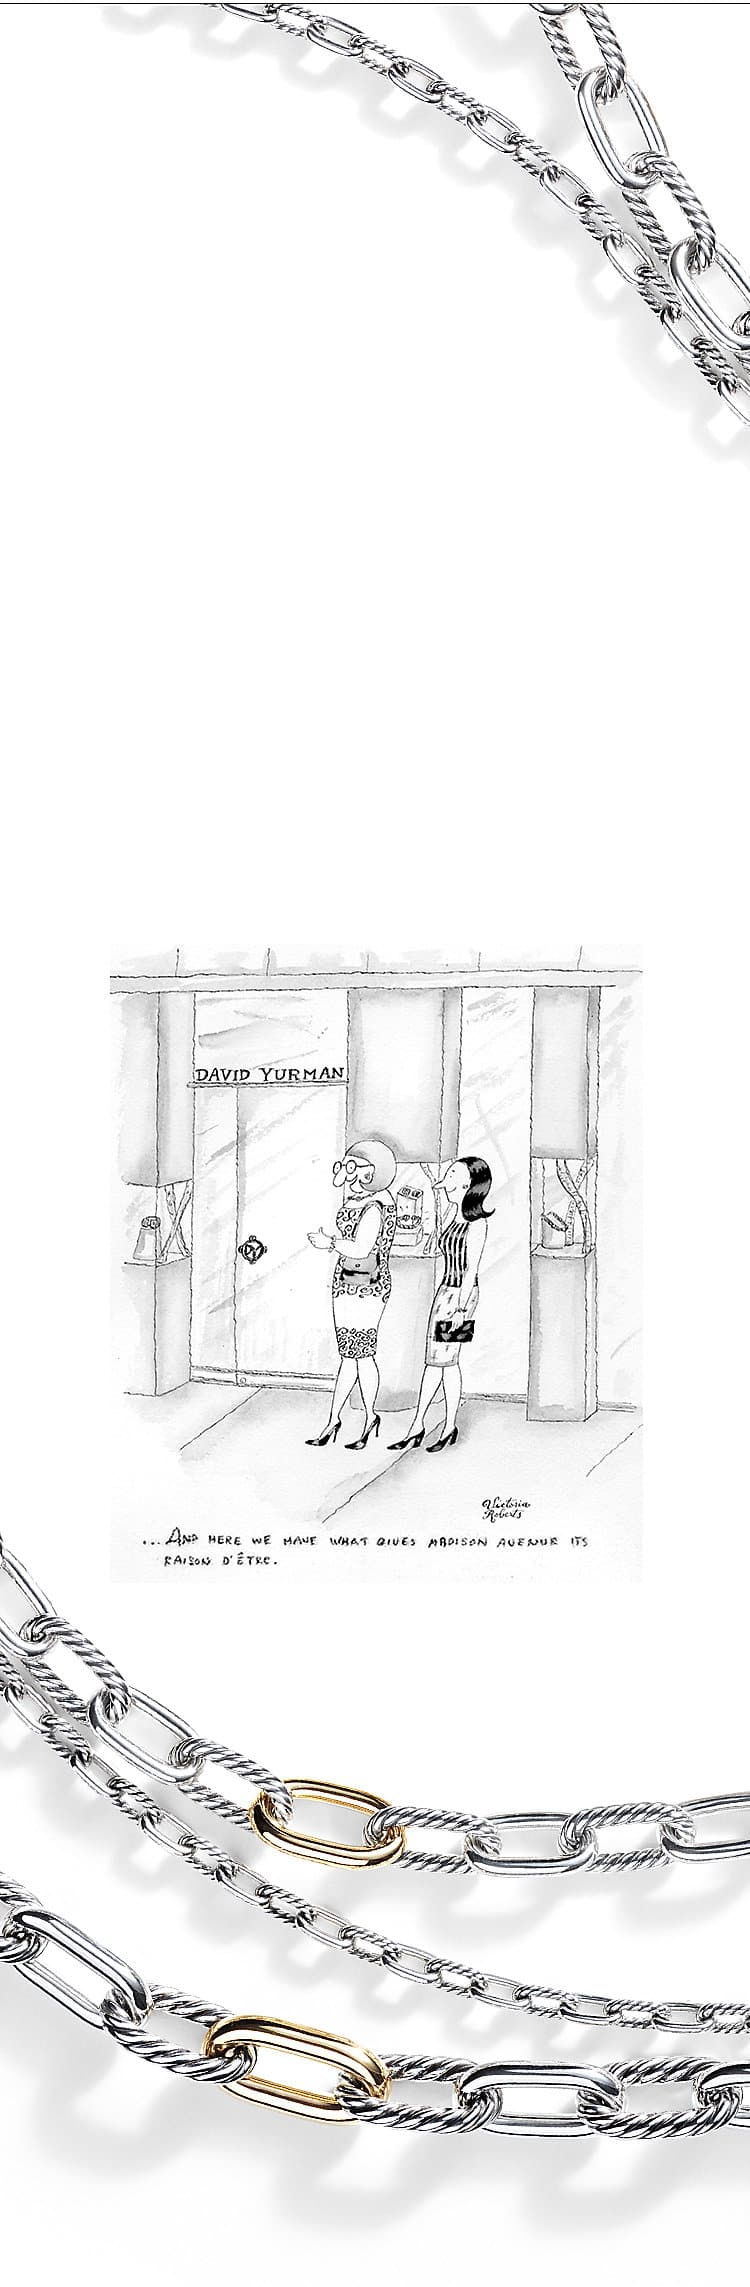 "A cartoon from ""The New Yorker"" depicting two women in front of the David Yurman store on Madison Avenue."